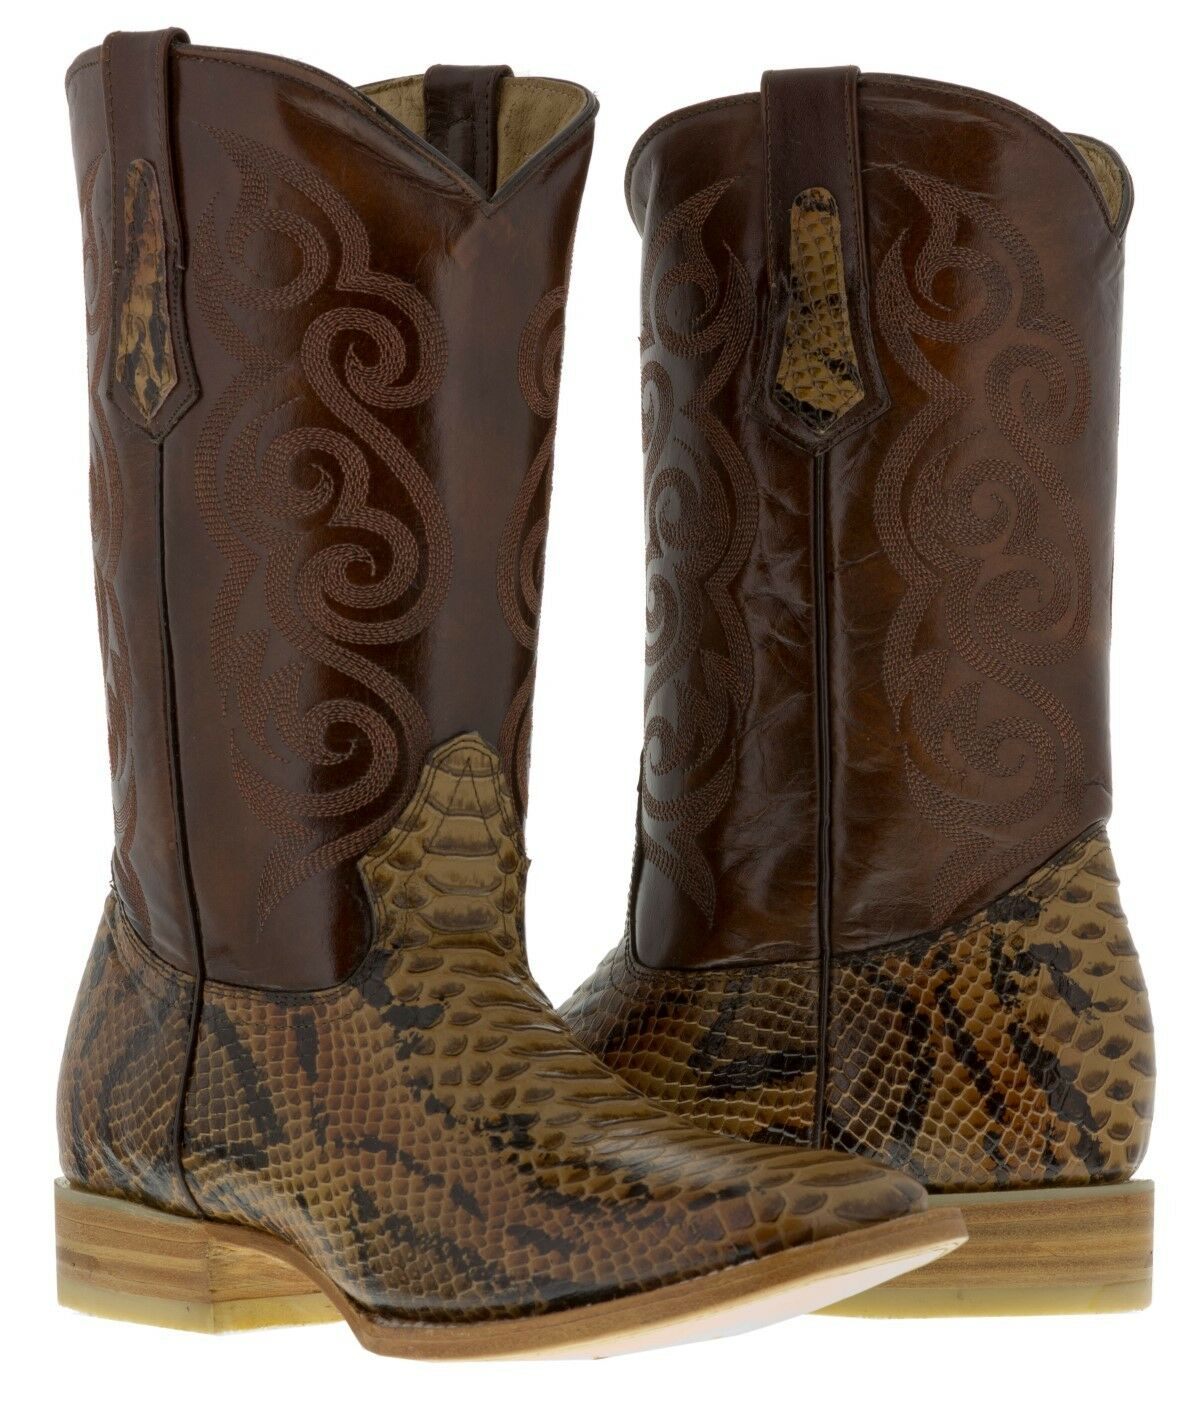 Mens handmade cognac brown python snake leather cowboy boots square toe